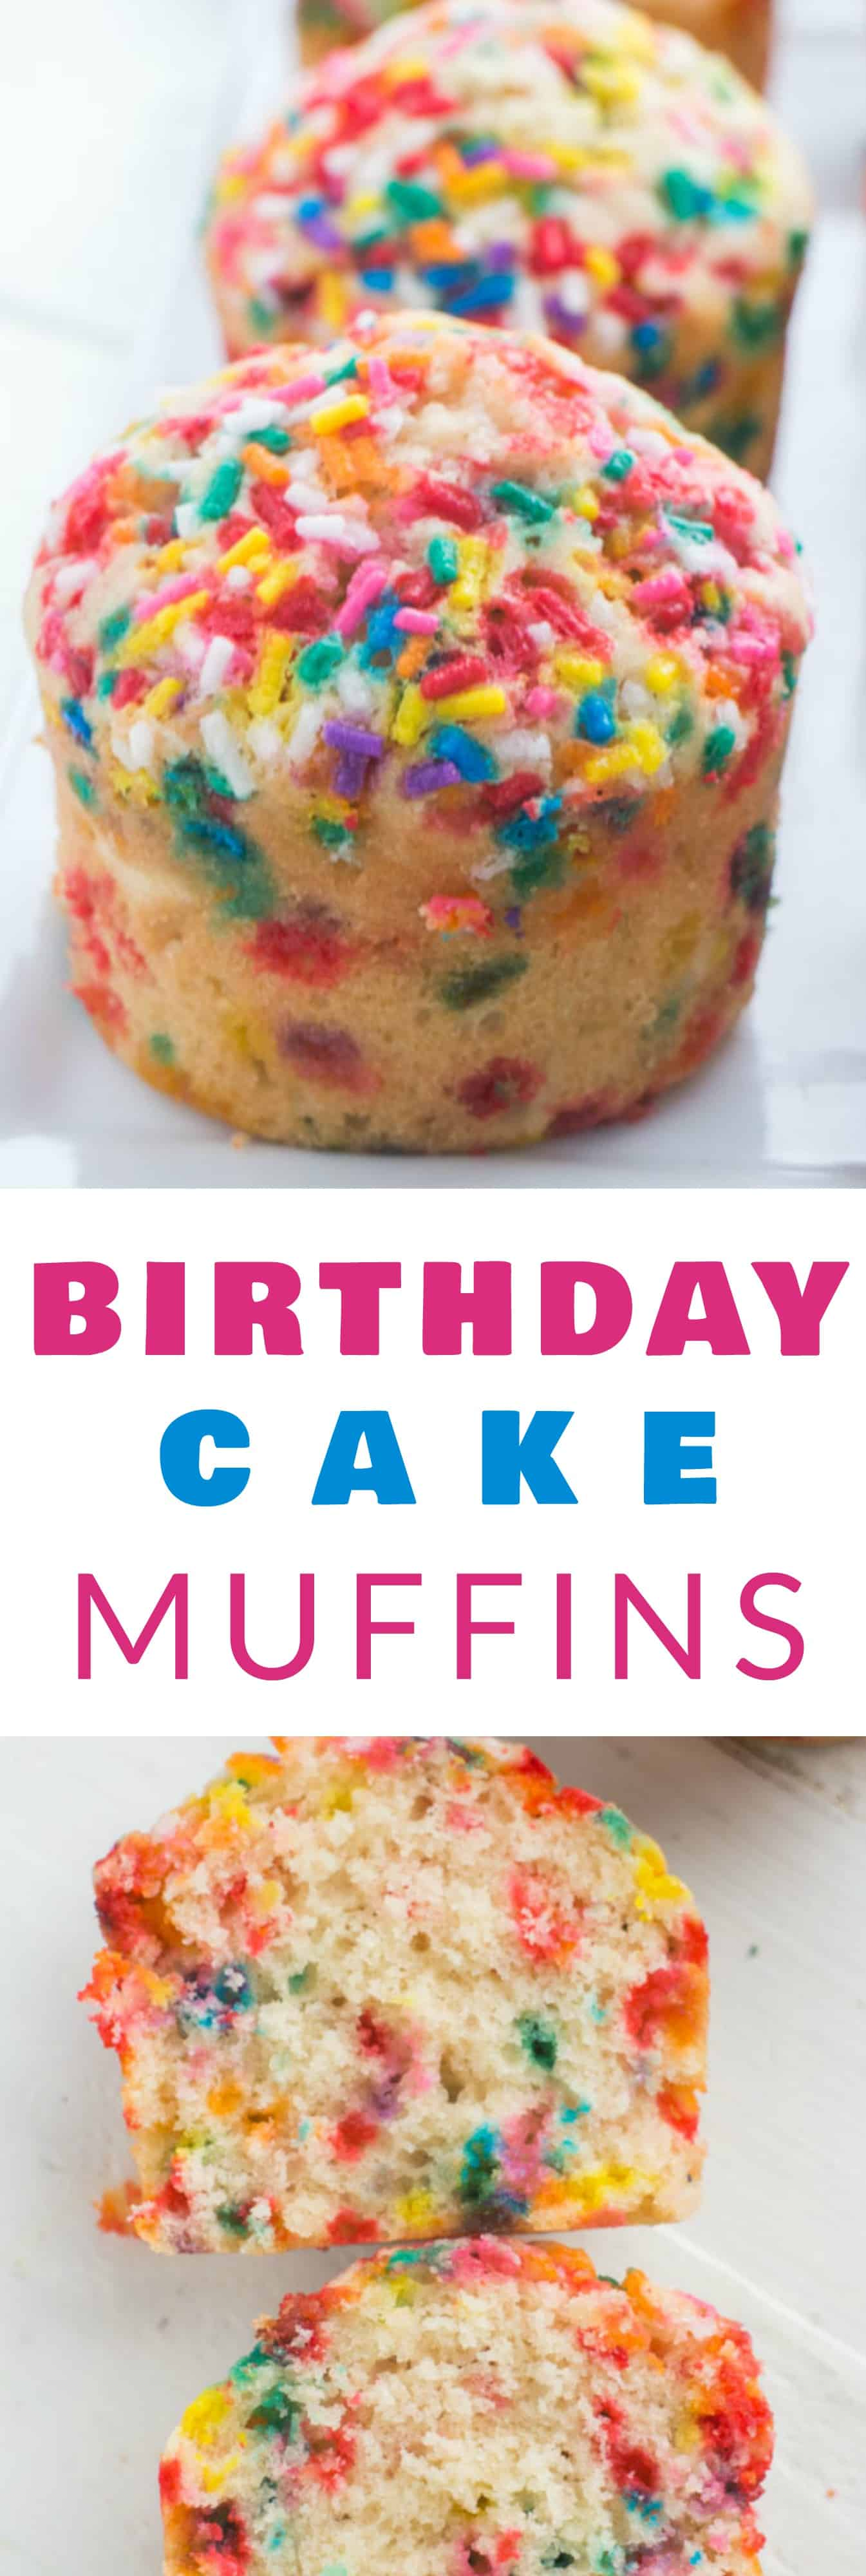 Fluffy, SPRINKLE BIRTHDAY CAKE Muffins that taste just like birthday cake! This is a easy rainbow muffins recipe that is pretty and perfect for happy birthday parties and birthday breakfast.  Kids LOVE these FUN birthday muffins!